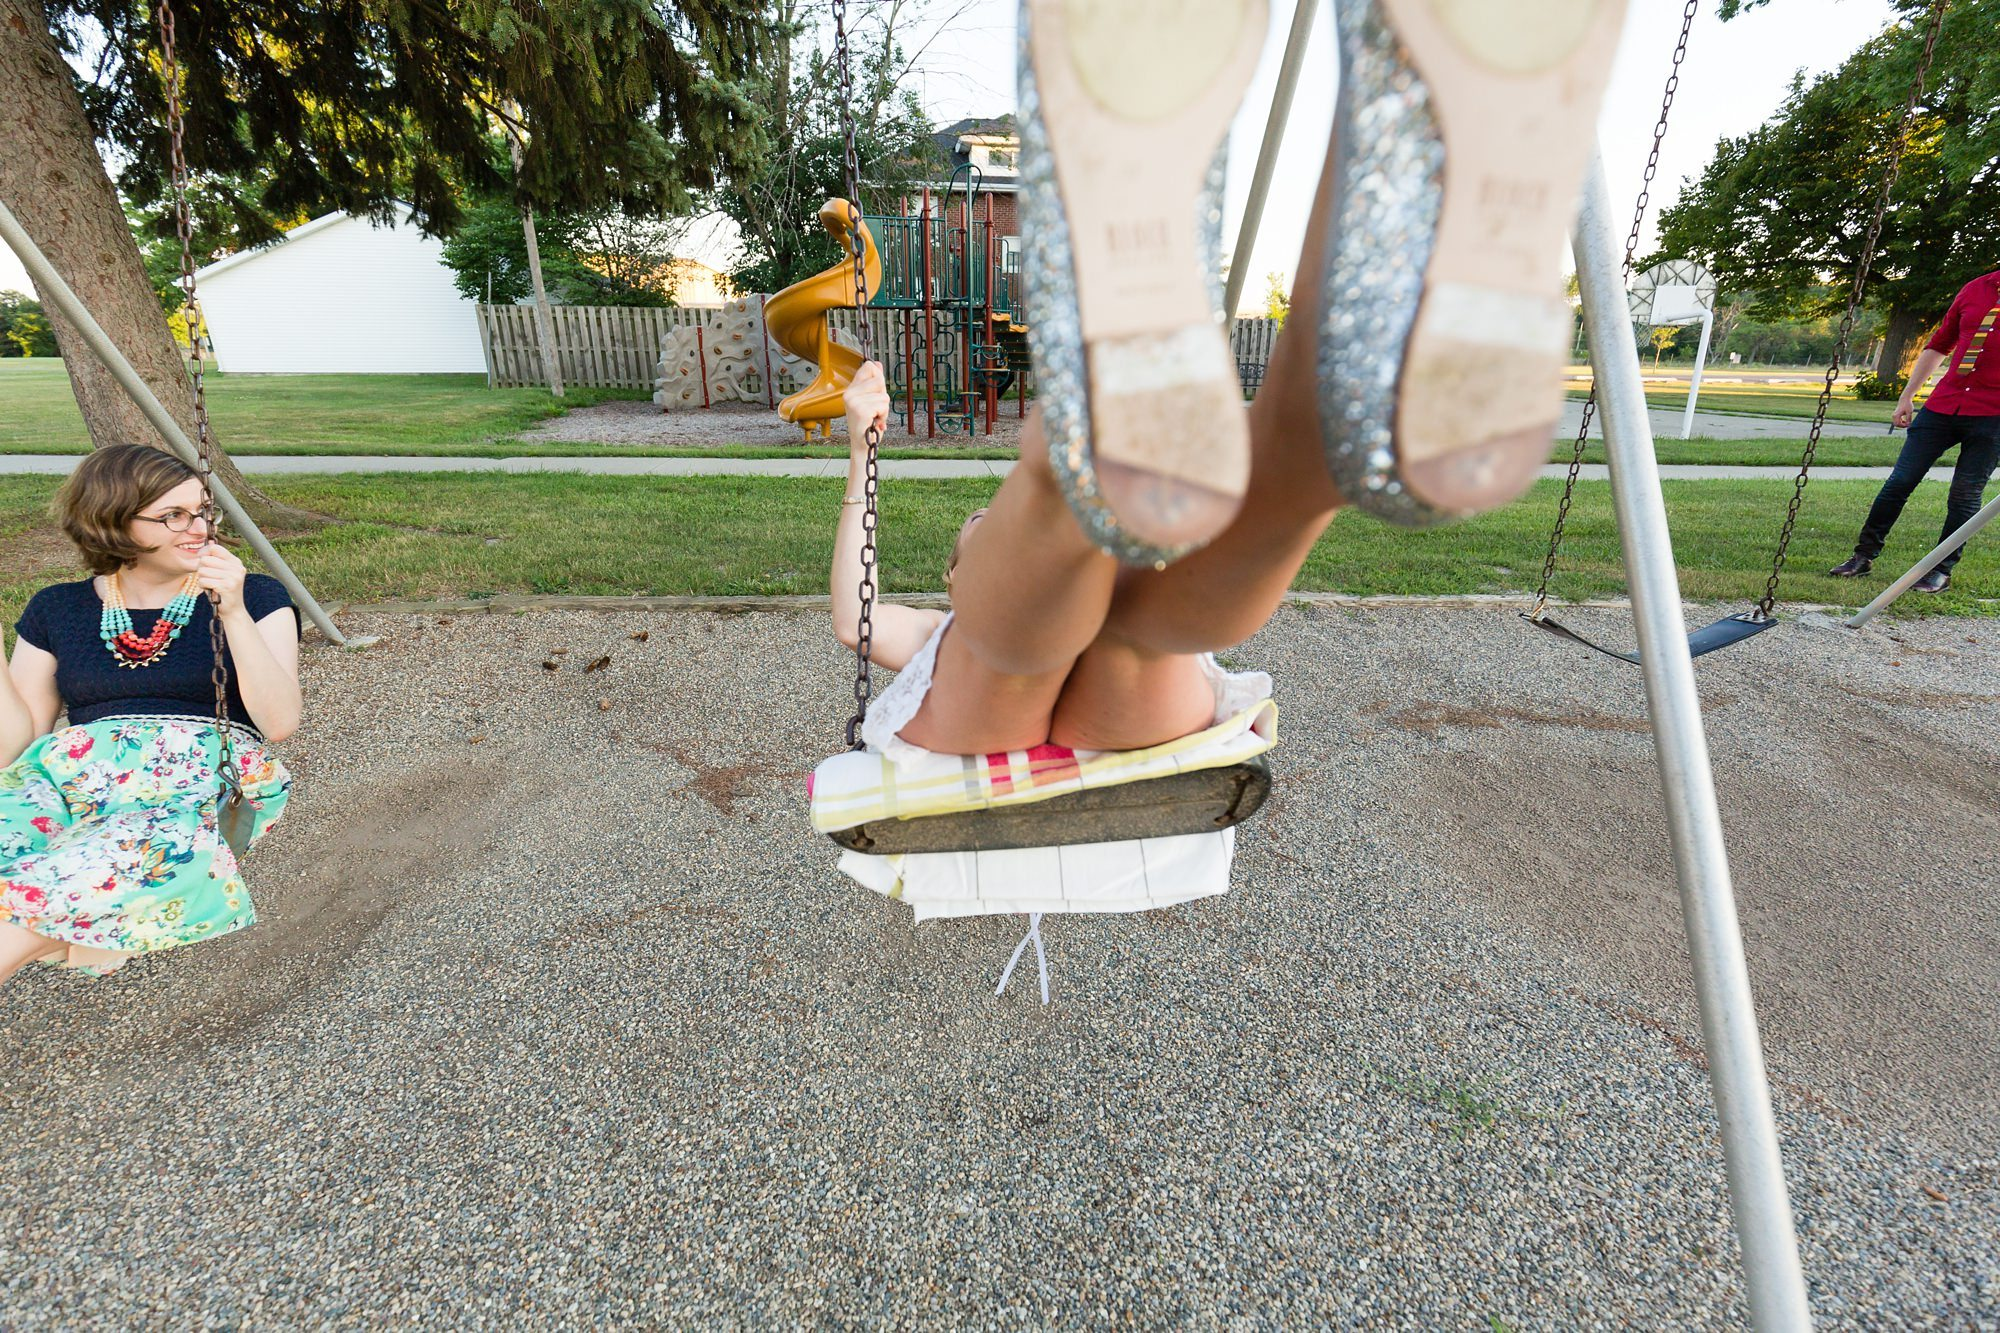 Bride on the swing during wedding